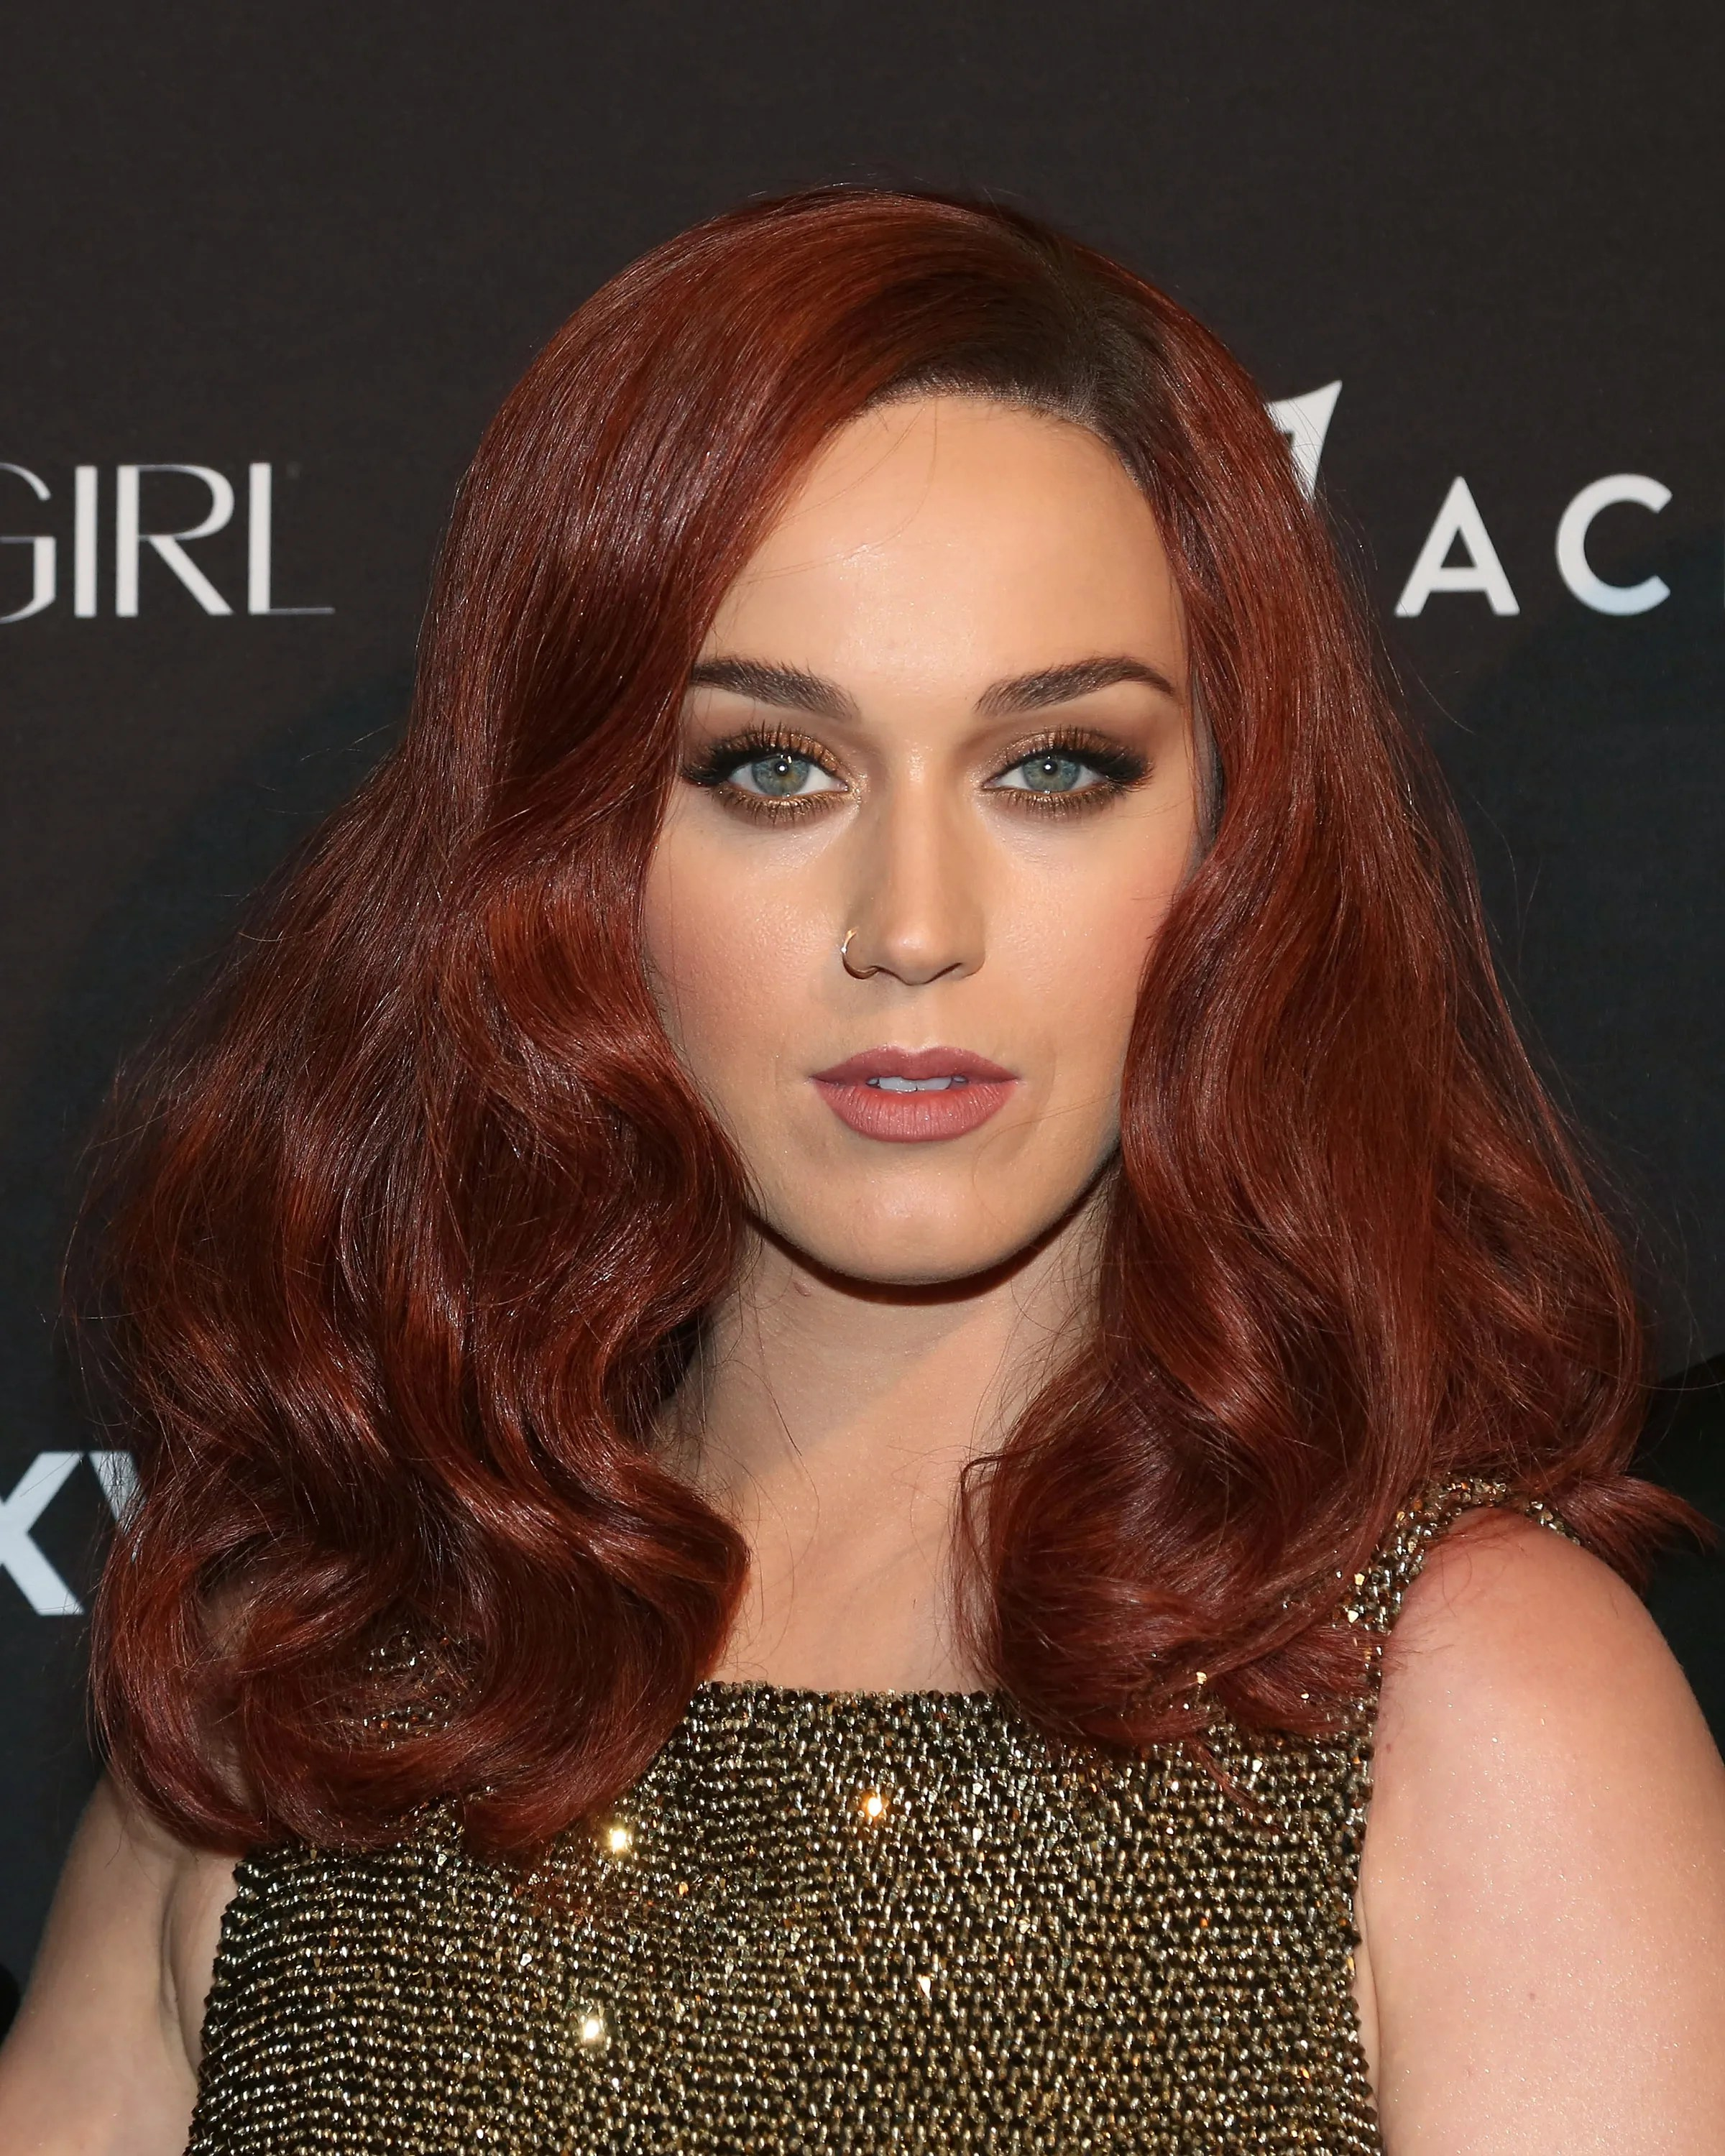 Katy Perrys Hair And Makeup Evolution From Teen Dream To